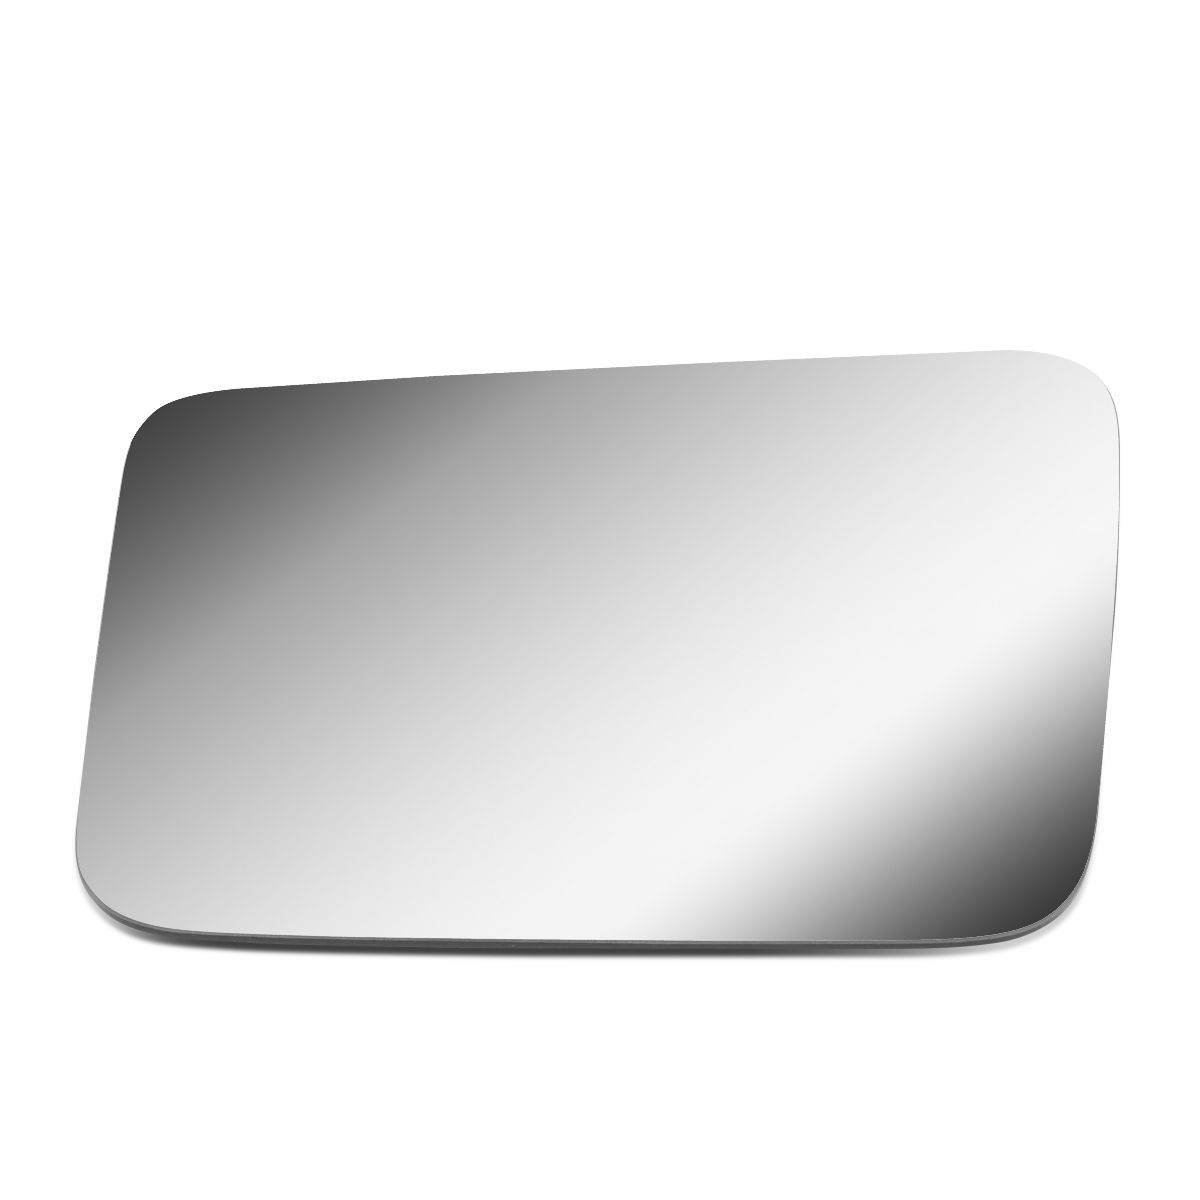 Driver//Left Side Door Rear View Mirror Glass Lens Replacement for 1996-2007 Chrysler Voyager//Dodge Grand Caravan